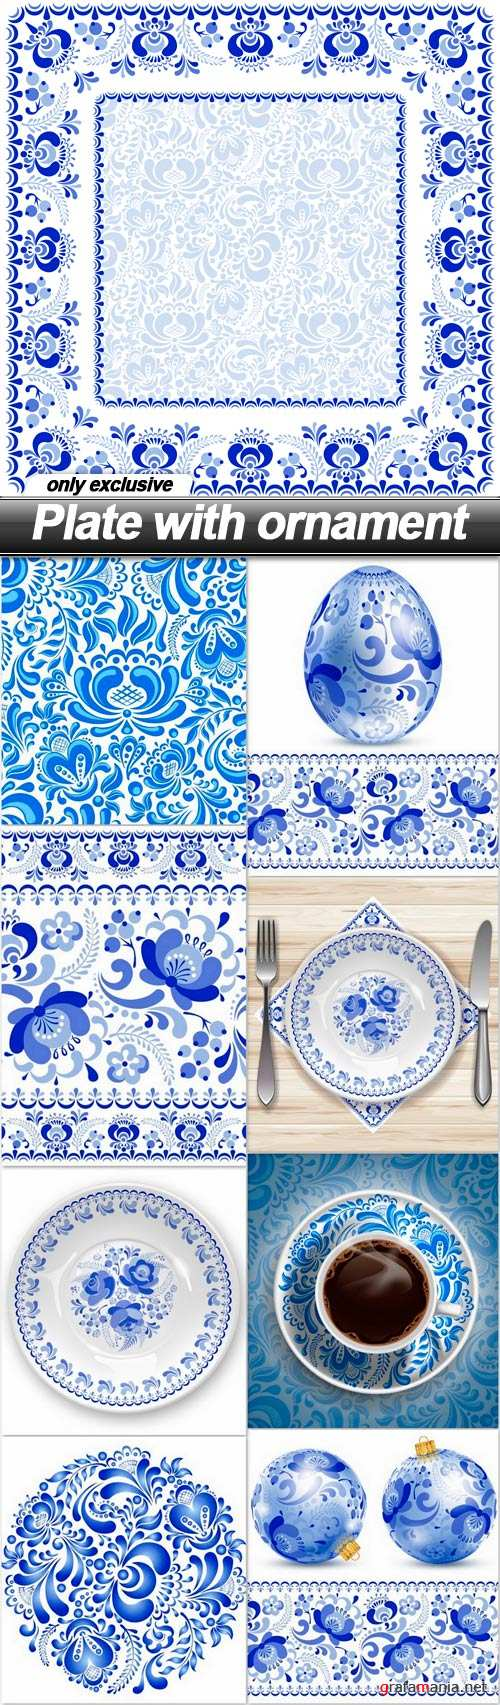 Plate with ornament - 9 EPS